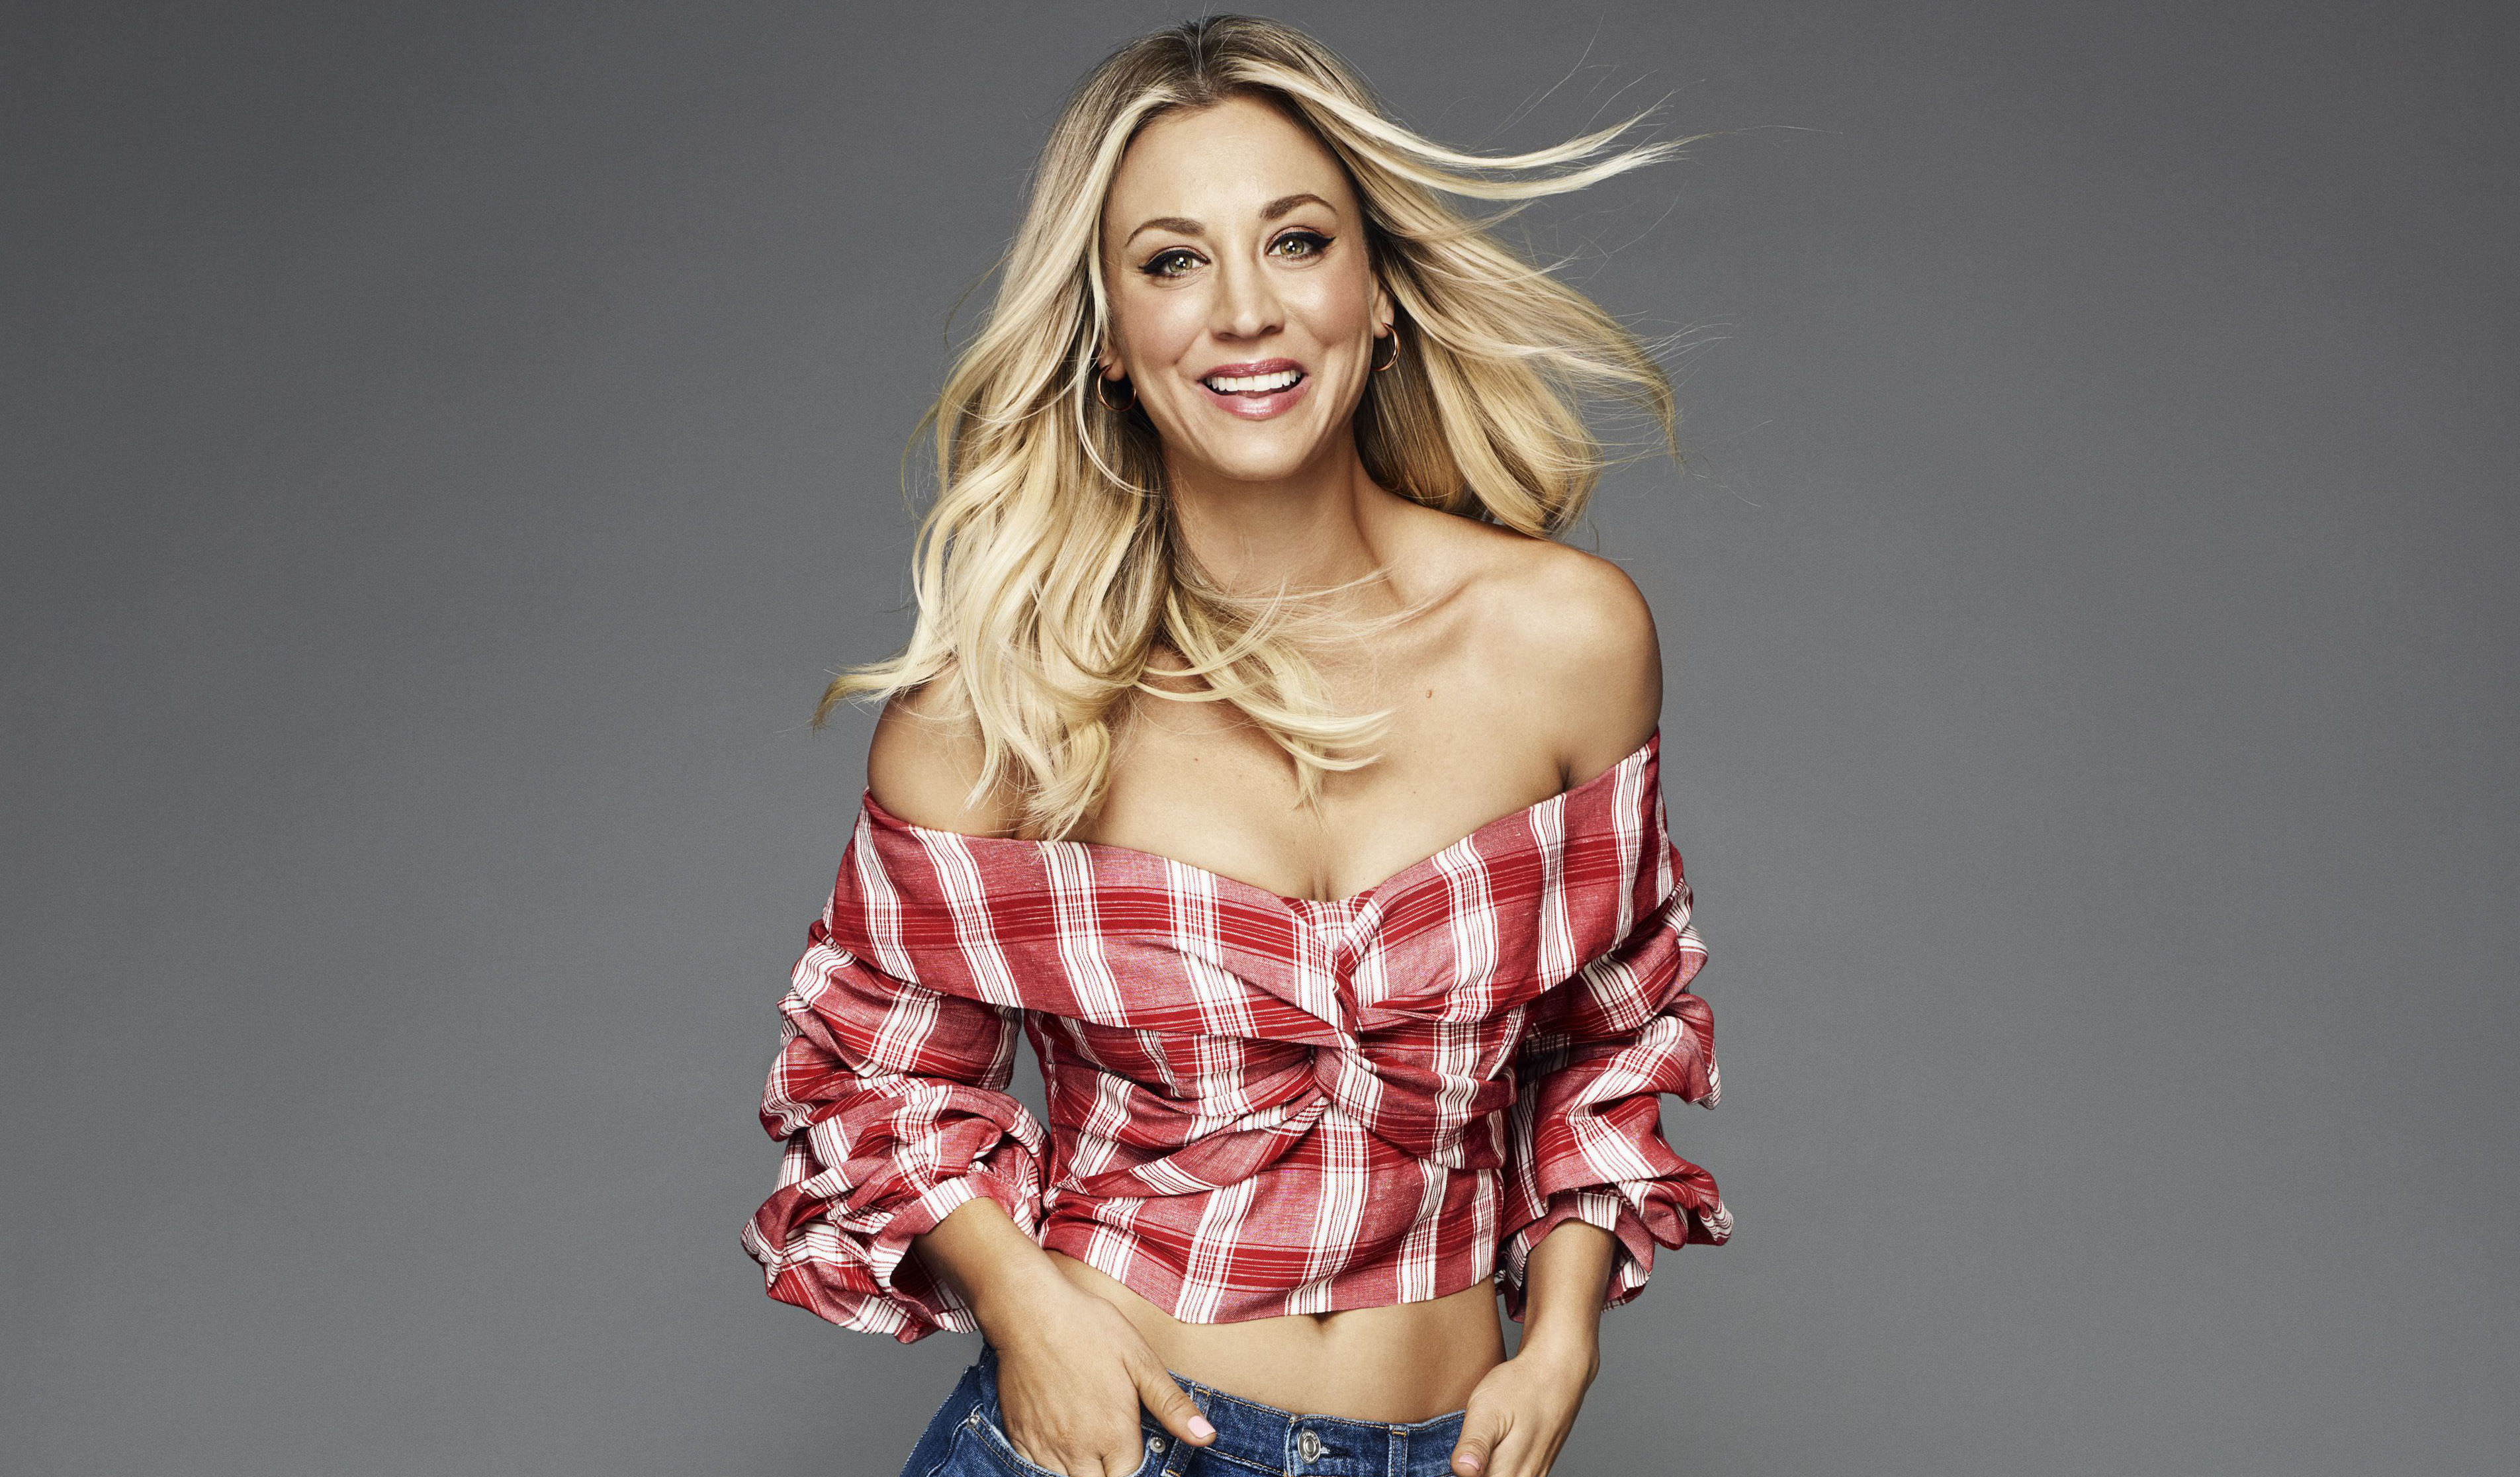 Kaley Cuoco 4k Hd Celebrities 4k Wallpapers Images Backgrounds